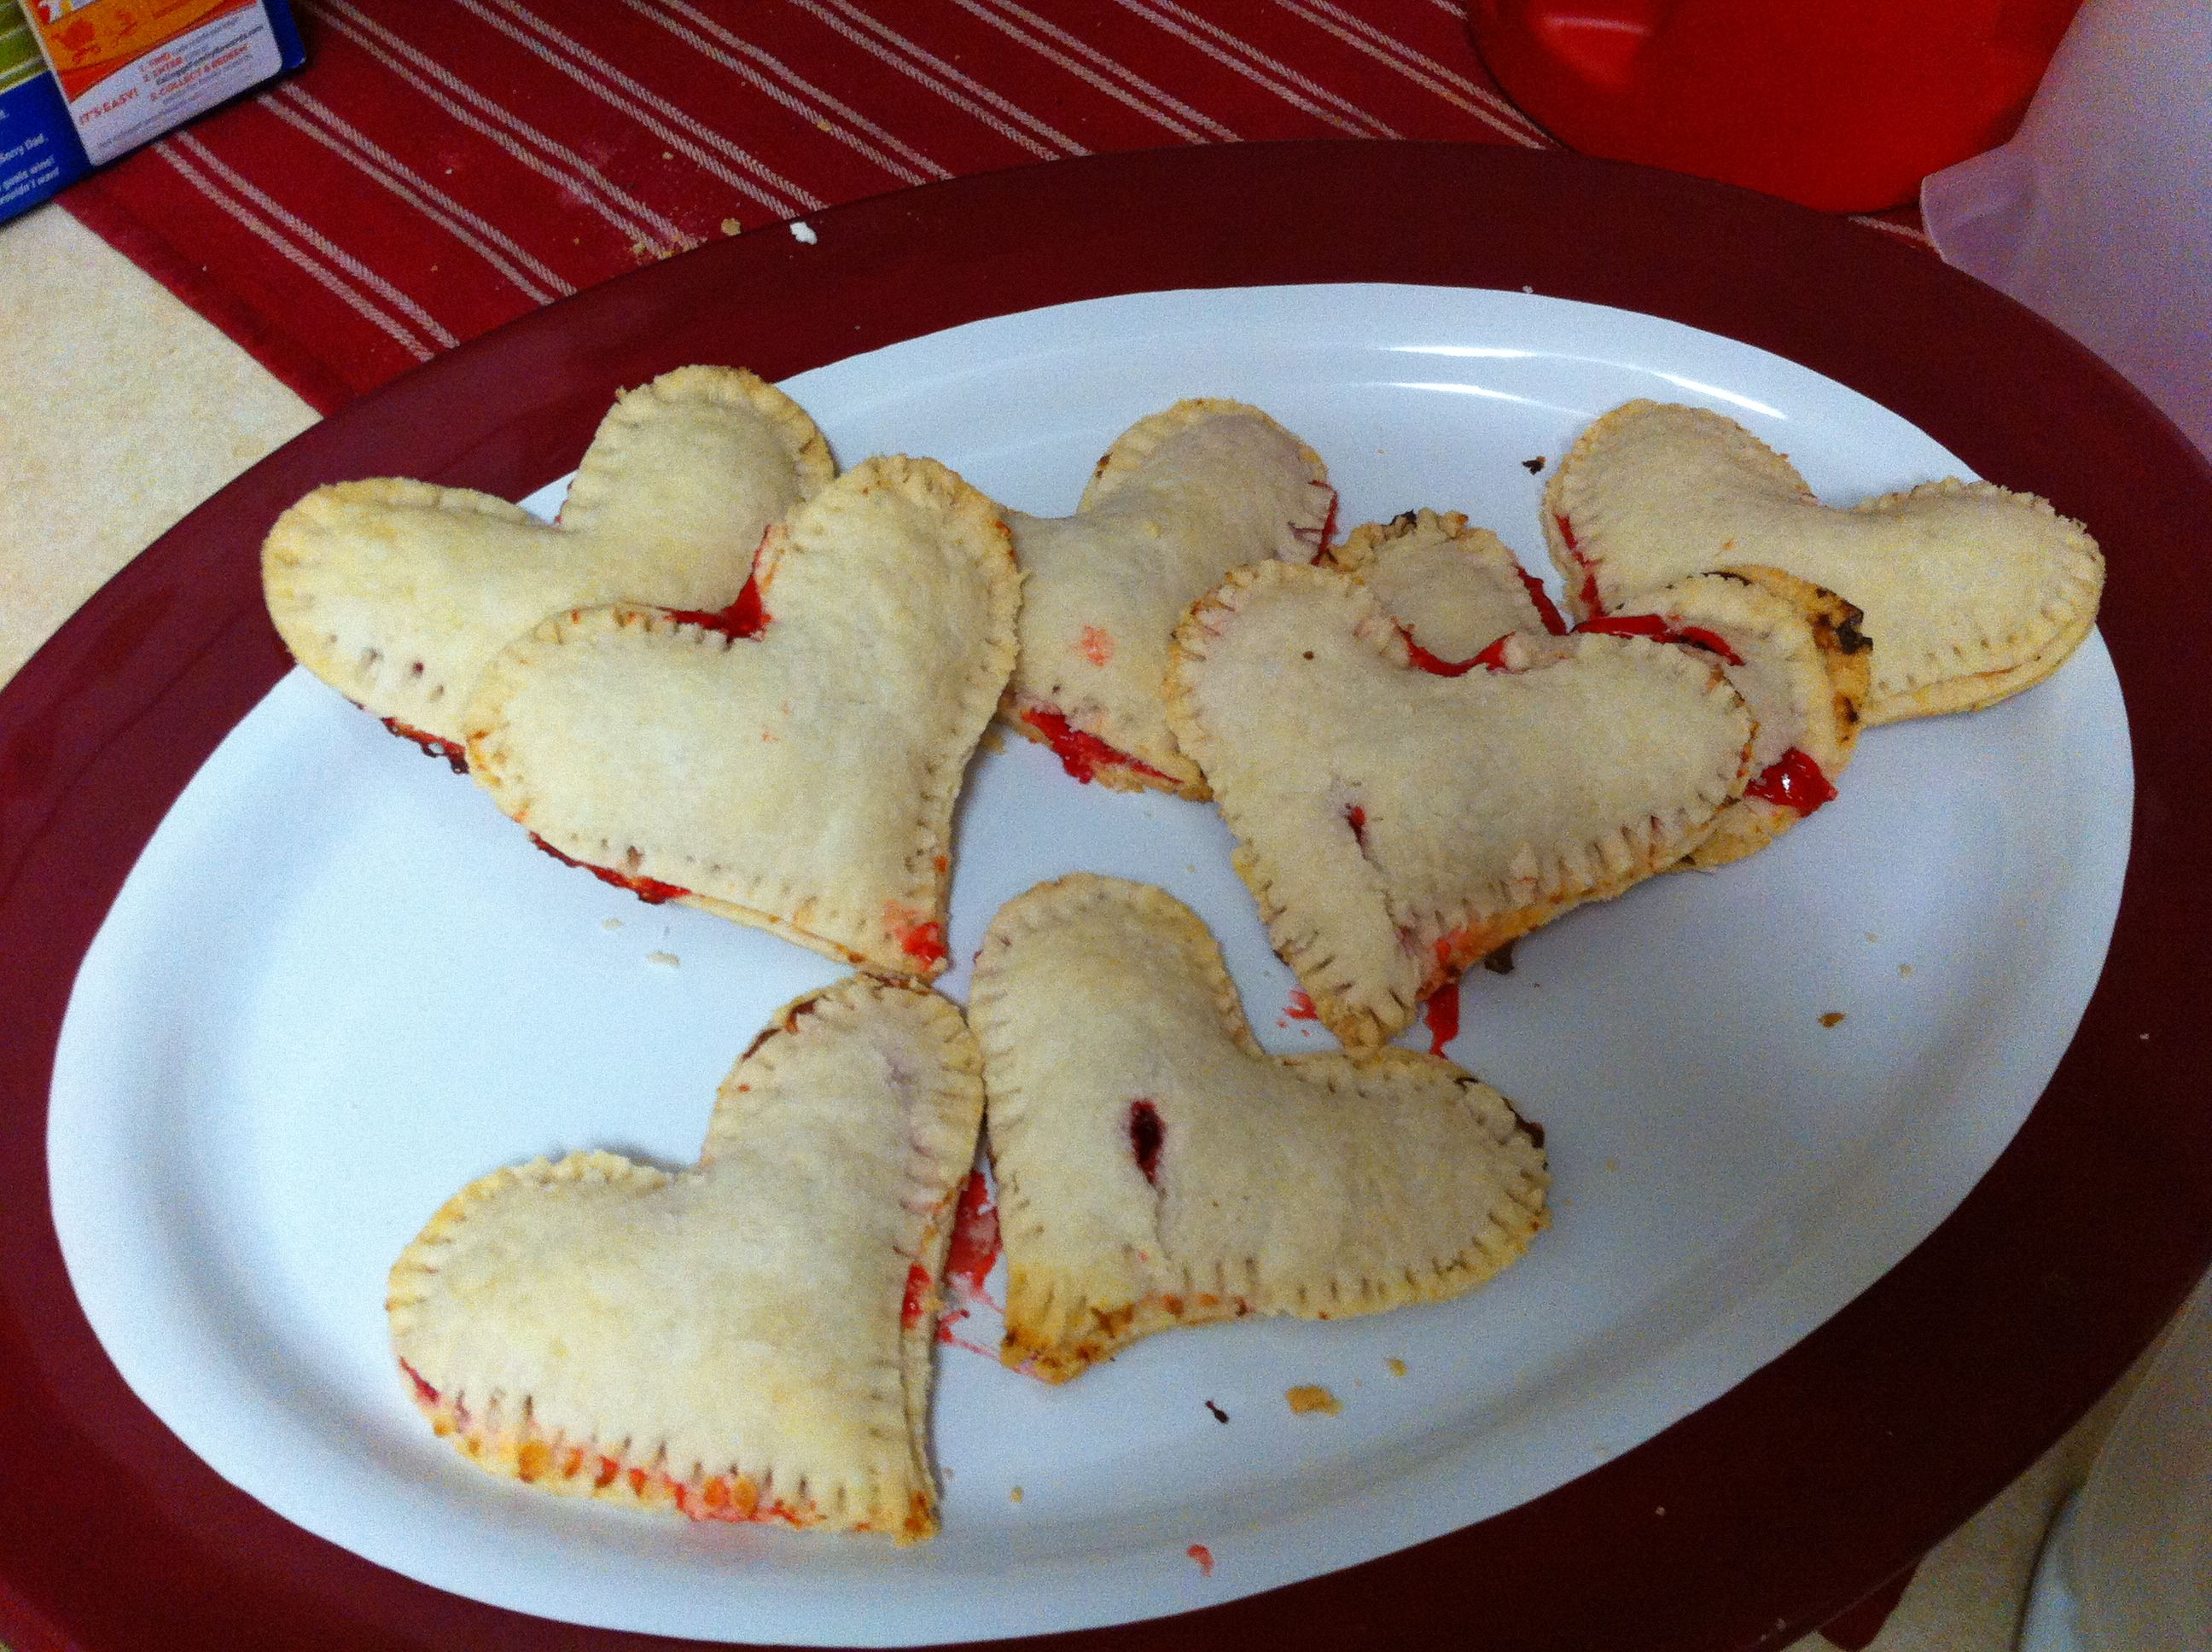 Individual cream cheese and strawberry pies for Valentine's Day